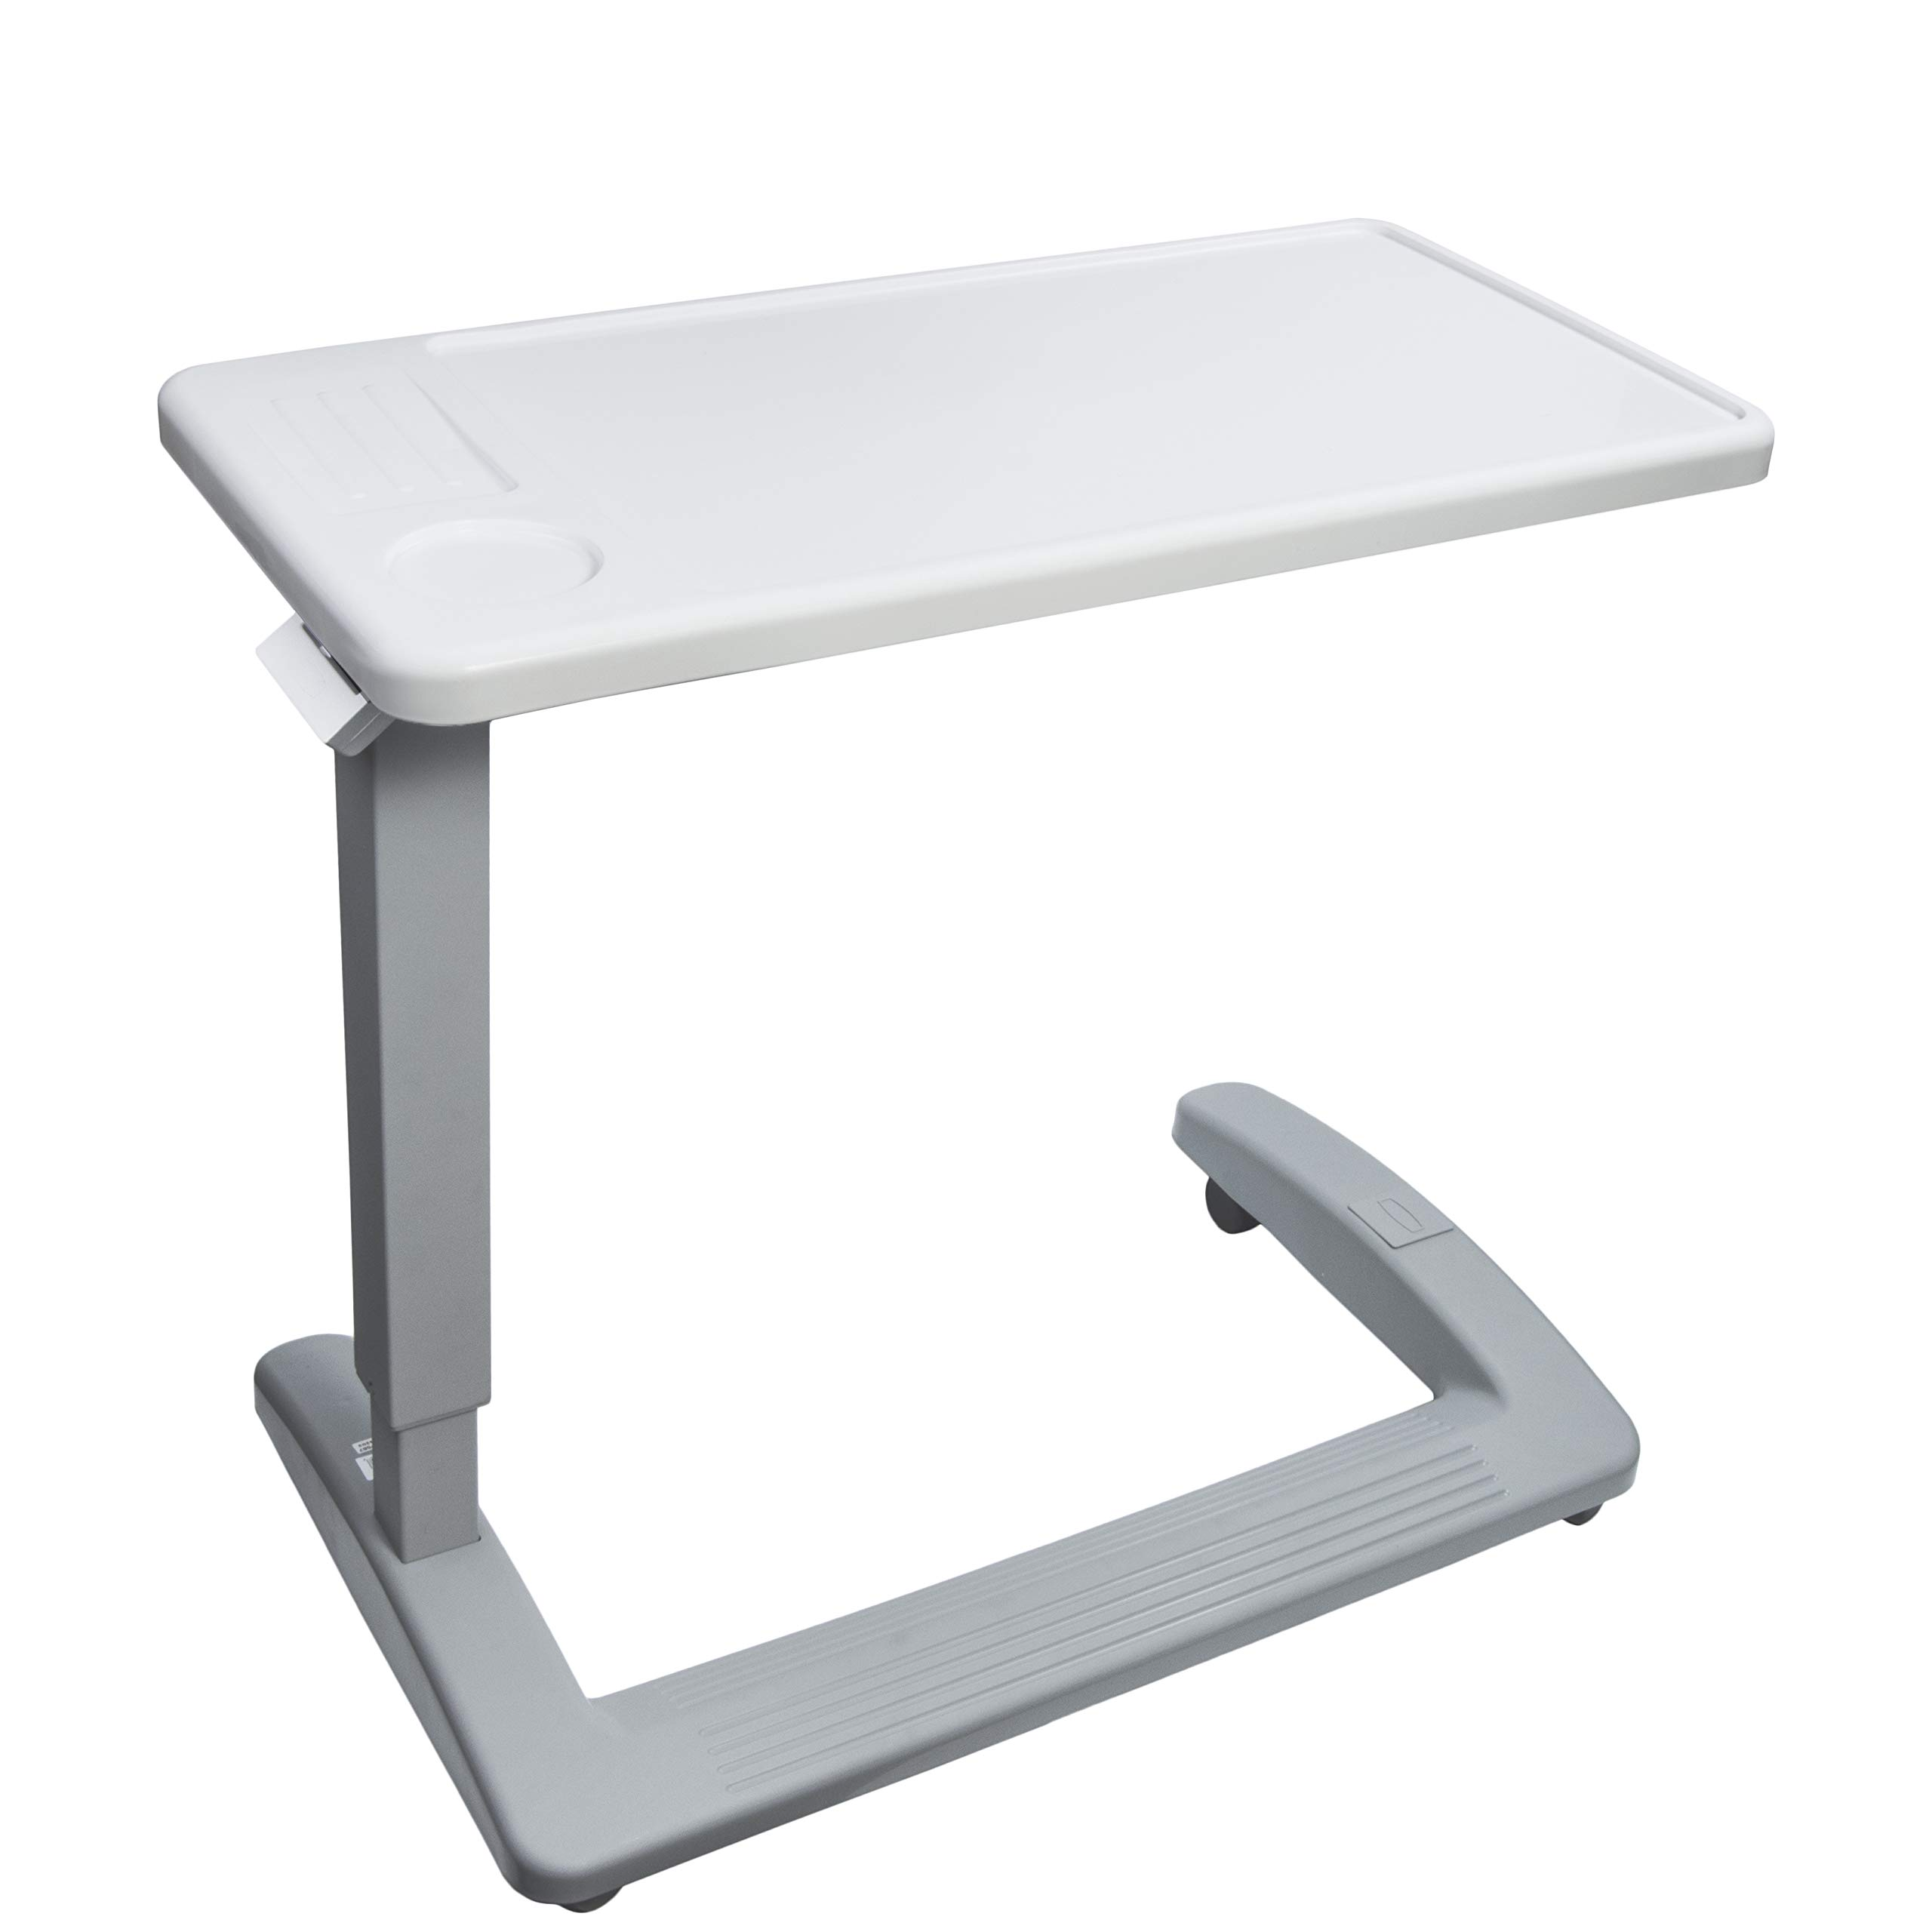 Vaunn Medical Deluxe Adjustable Overbed Bedside Table with Wheels (Hospital and Home Use) by Vaunn (Image #7)